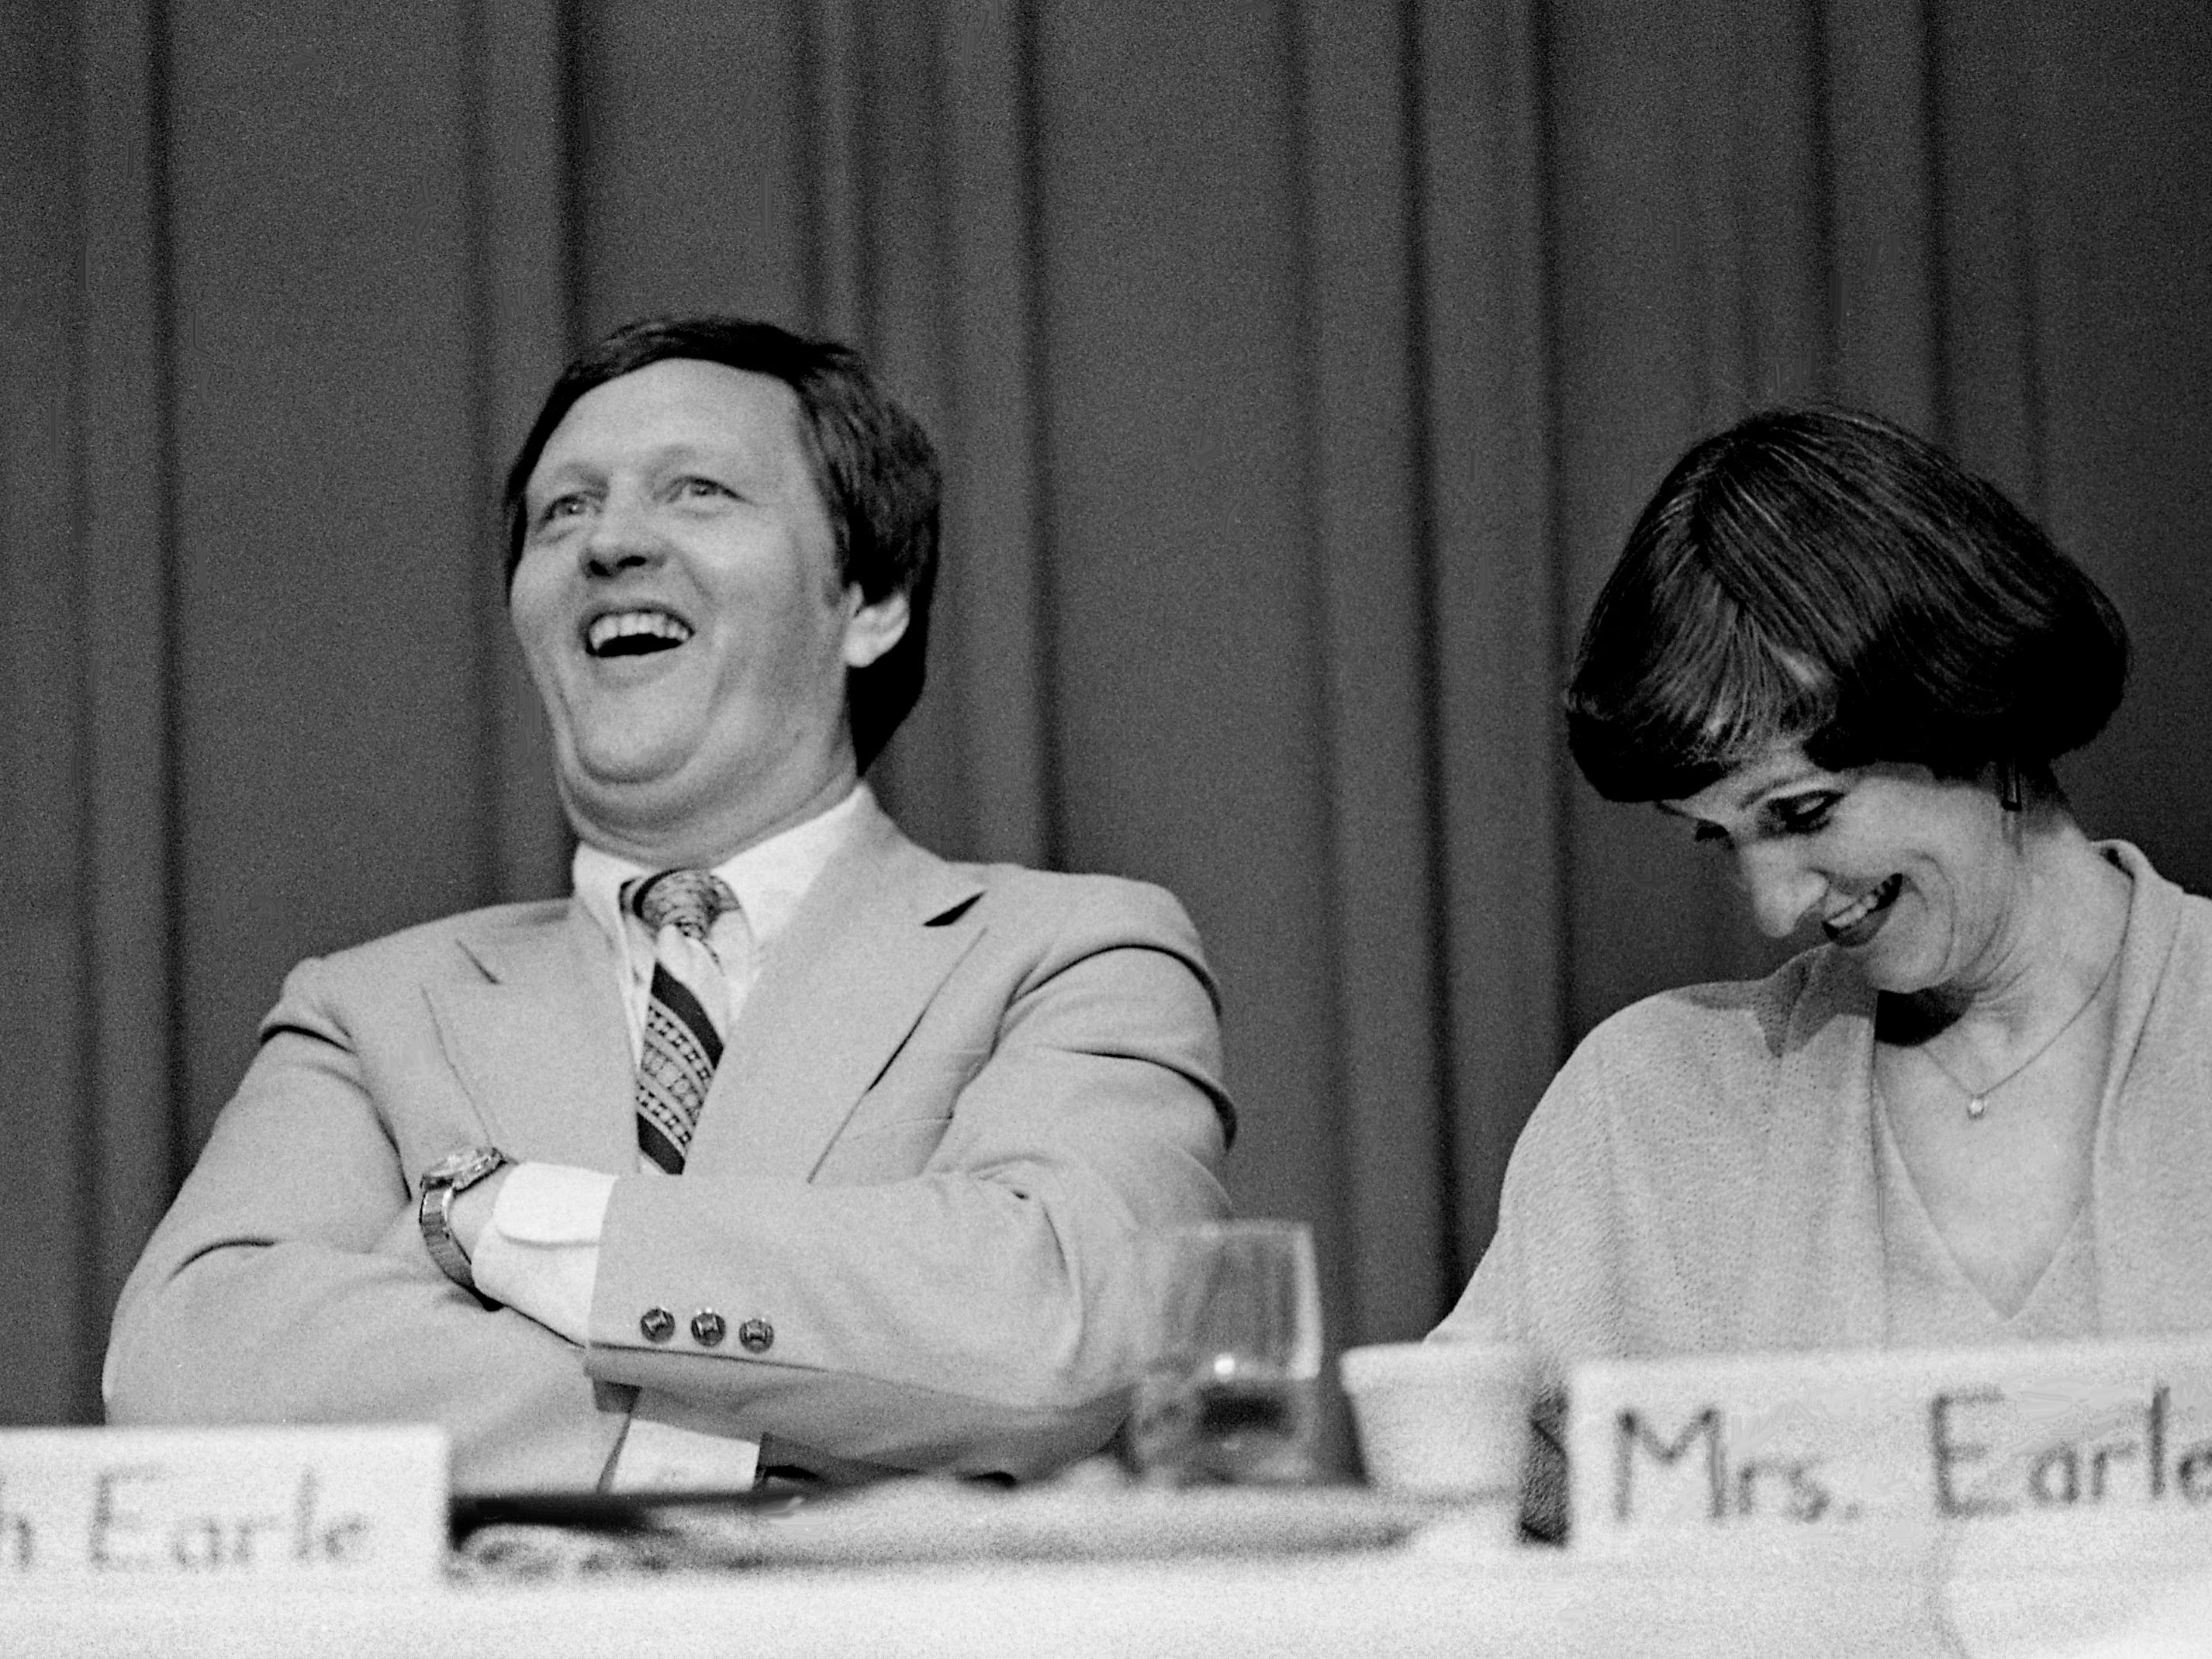 Former Middle Tennessee State University head basketball coach Jimmy Earle, left, who retired after the season ended, lets out a hearty laugh as friends, members of the media and long-time coaching associates roast and toast him during an appreciation testimonial on campus April 26, 1979. Enjoying the moment is Earle's wife, Frances.